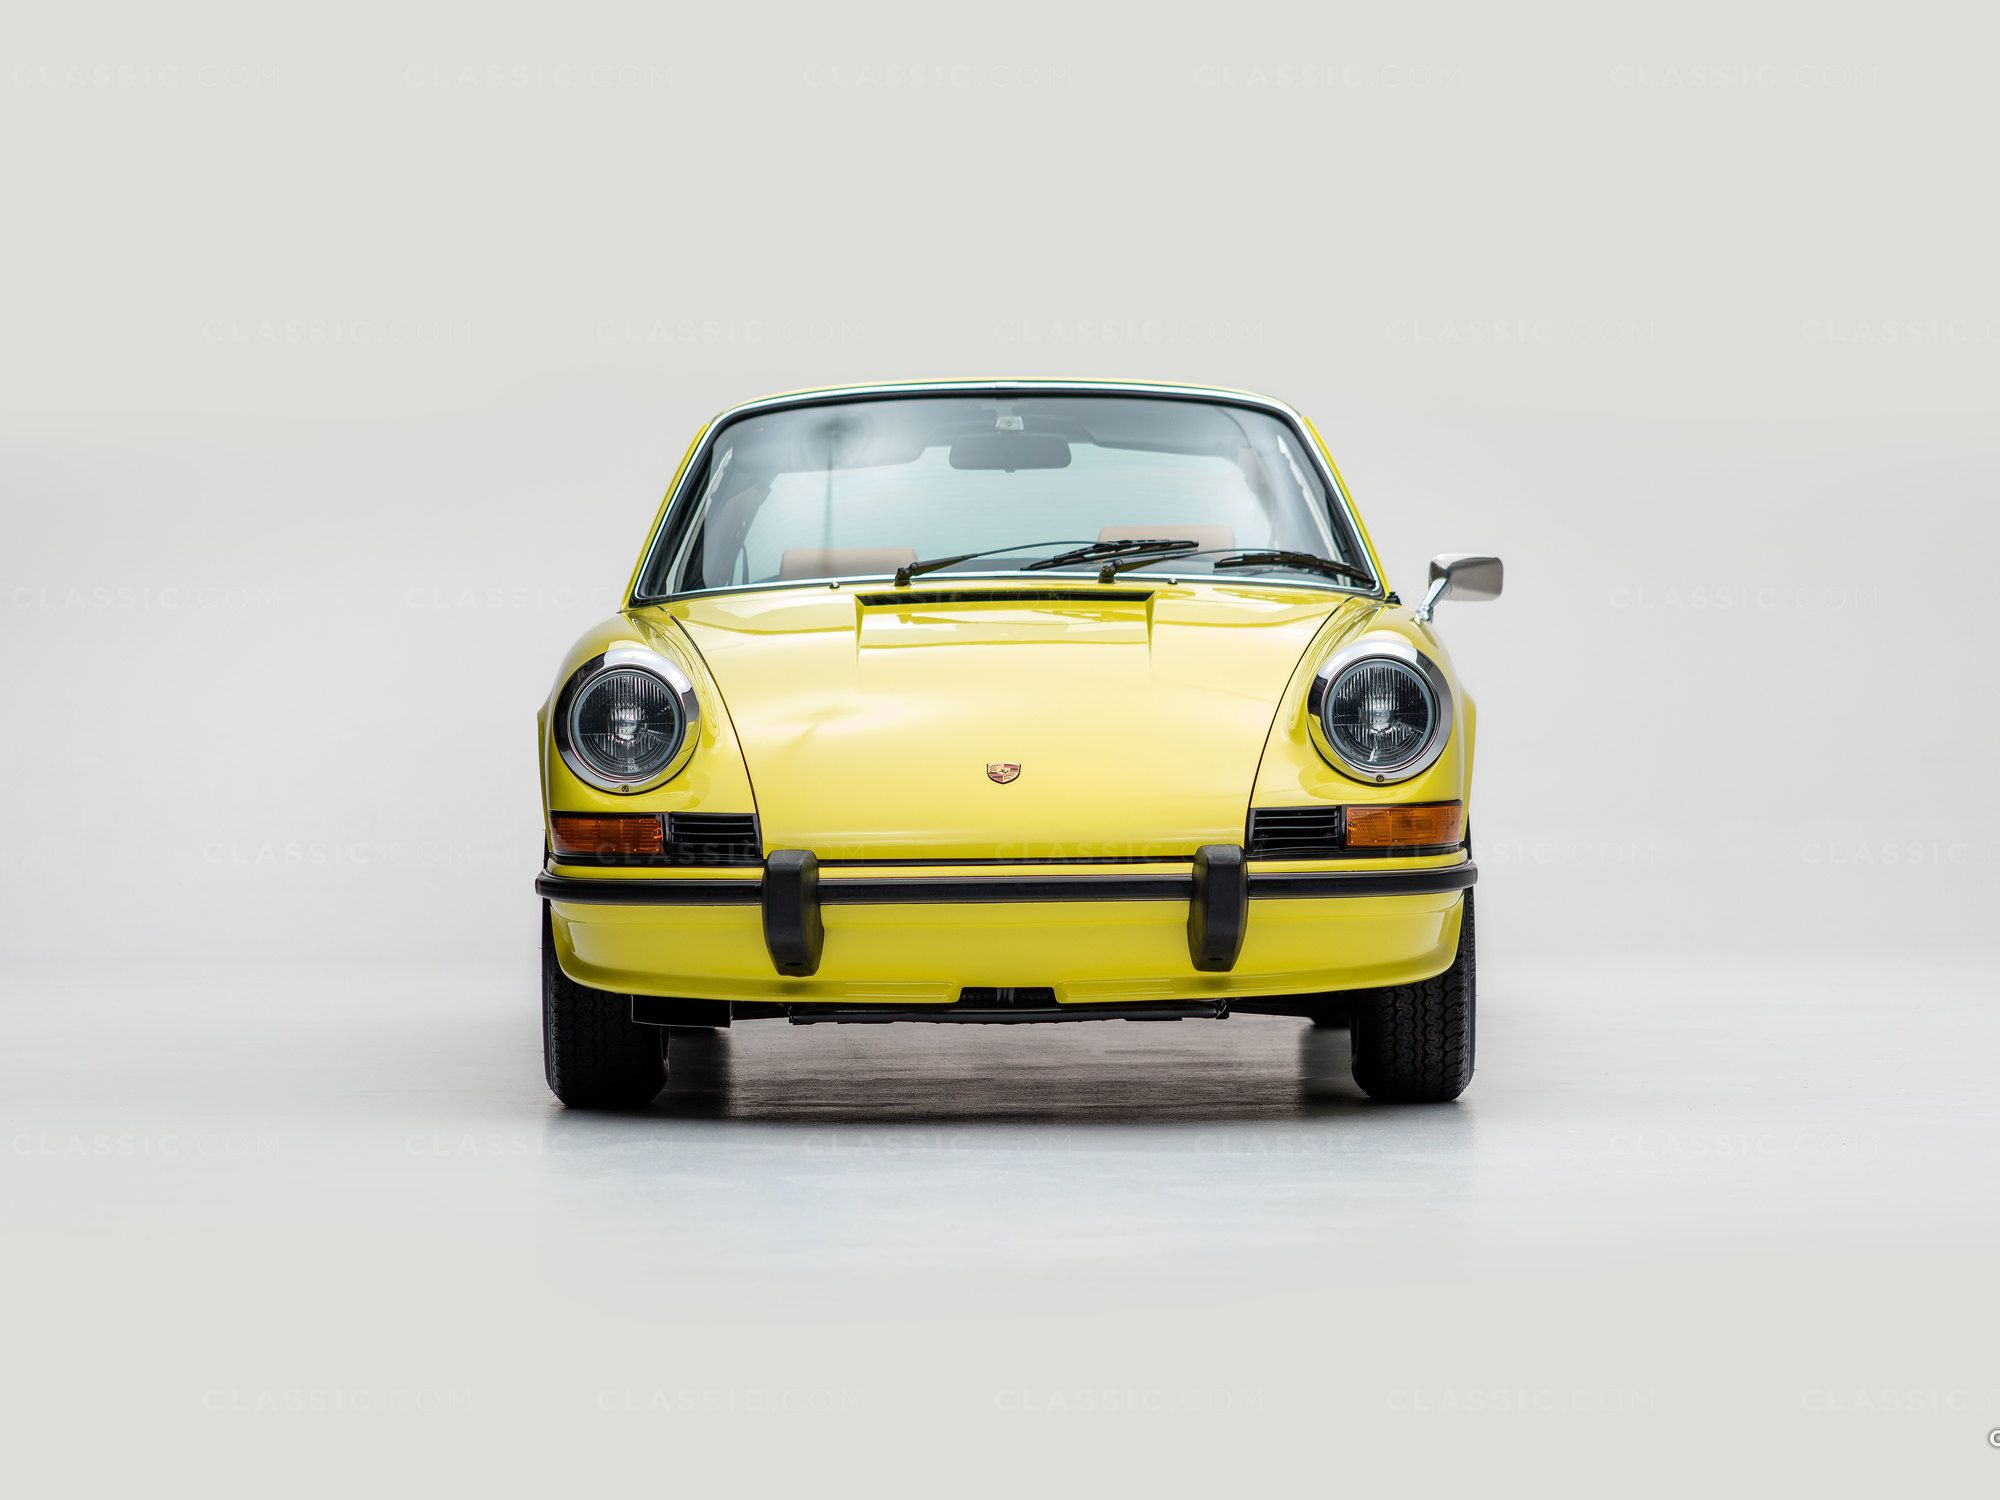 View details of this Yellow 1973 Porsche 911. Highlights include 2.4 ...